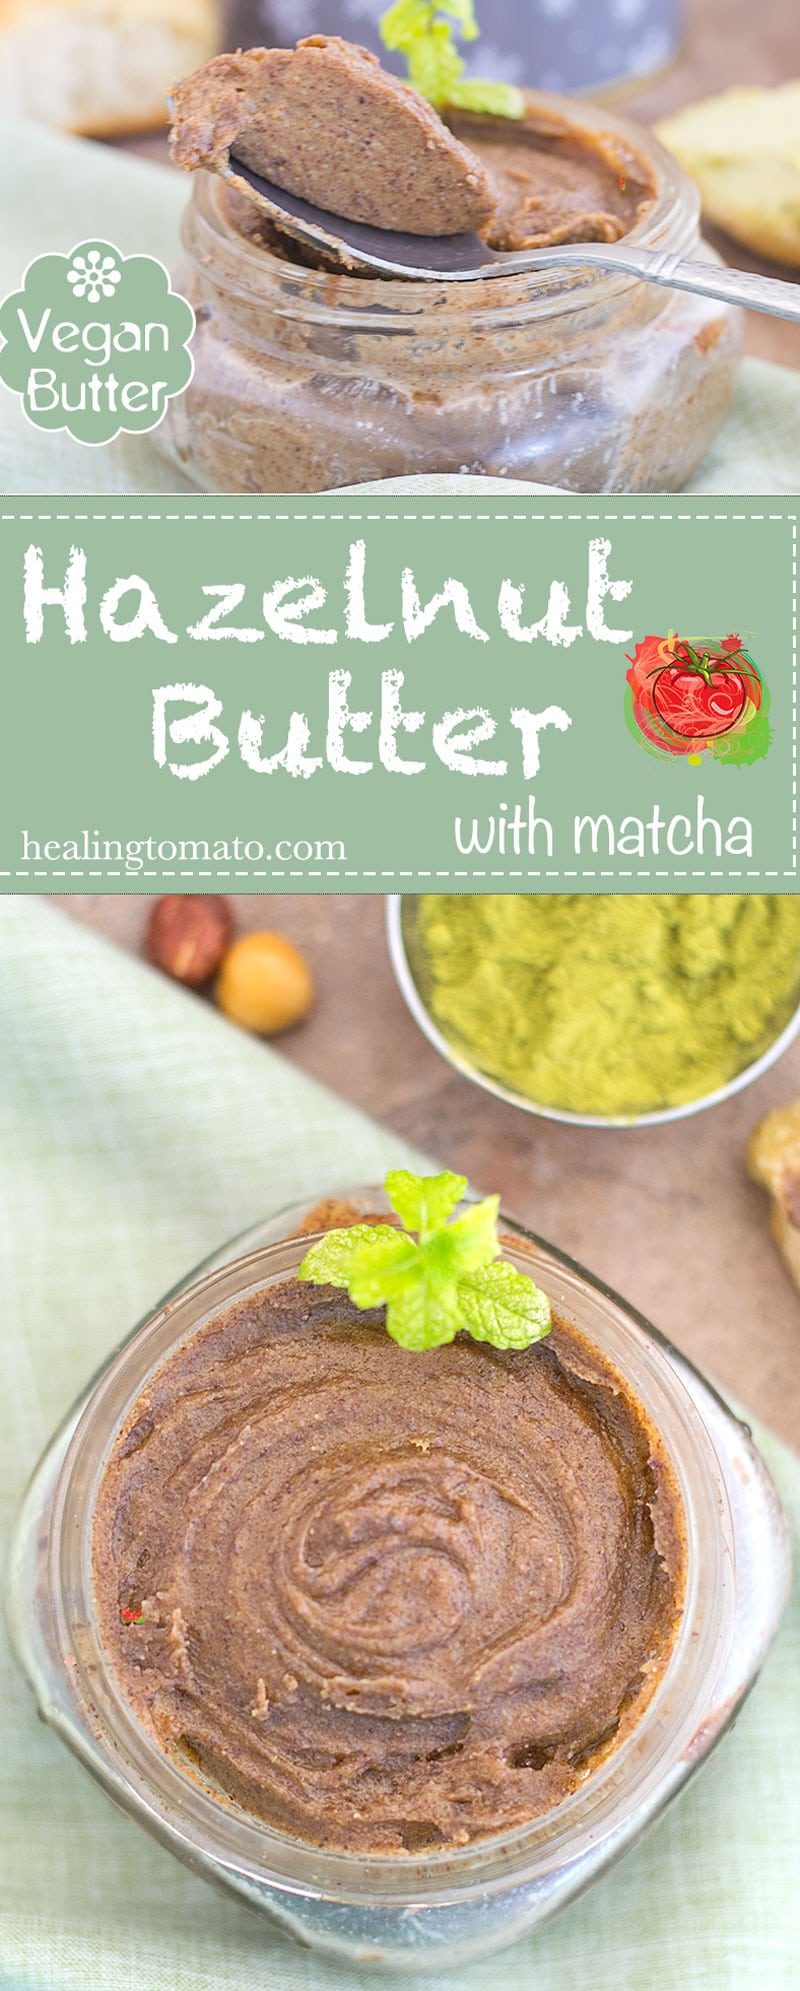 This matcha hazelnut butter is so easy to make and it is the perfect brunch or breakfast recipe. The hazelnut butter takes only 15 minutes to make in the NutraMilk Machine and its delicious.